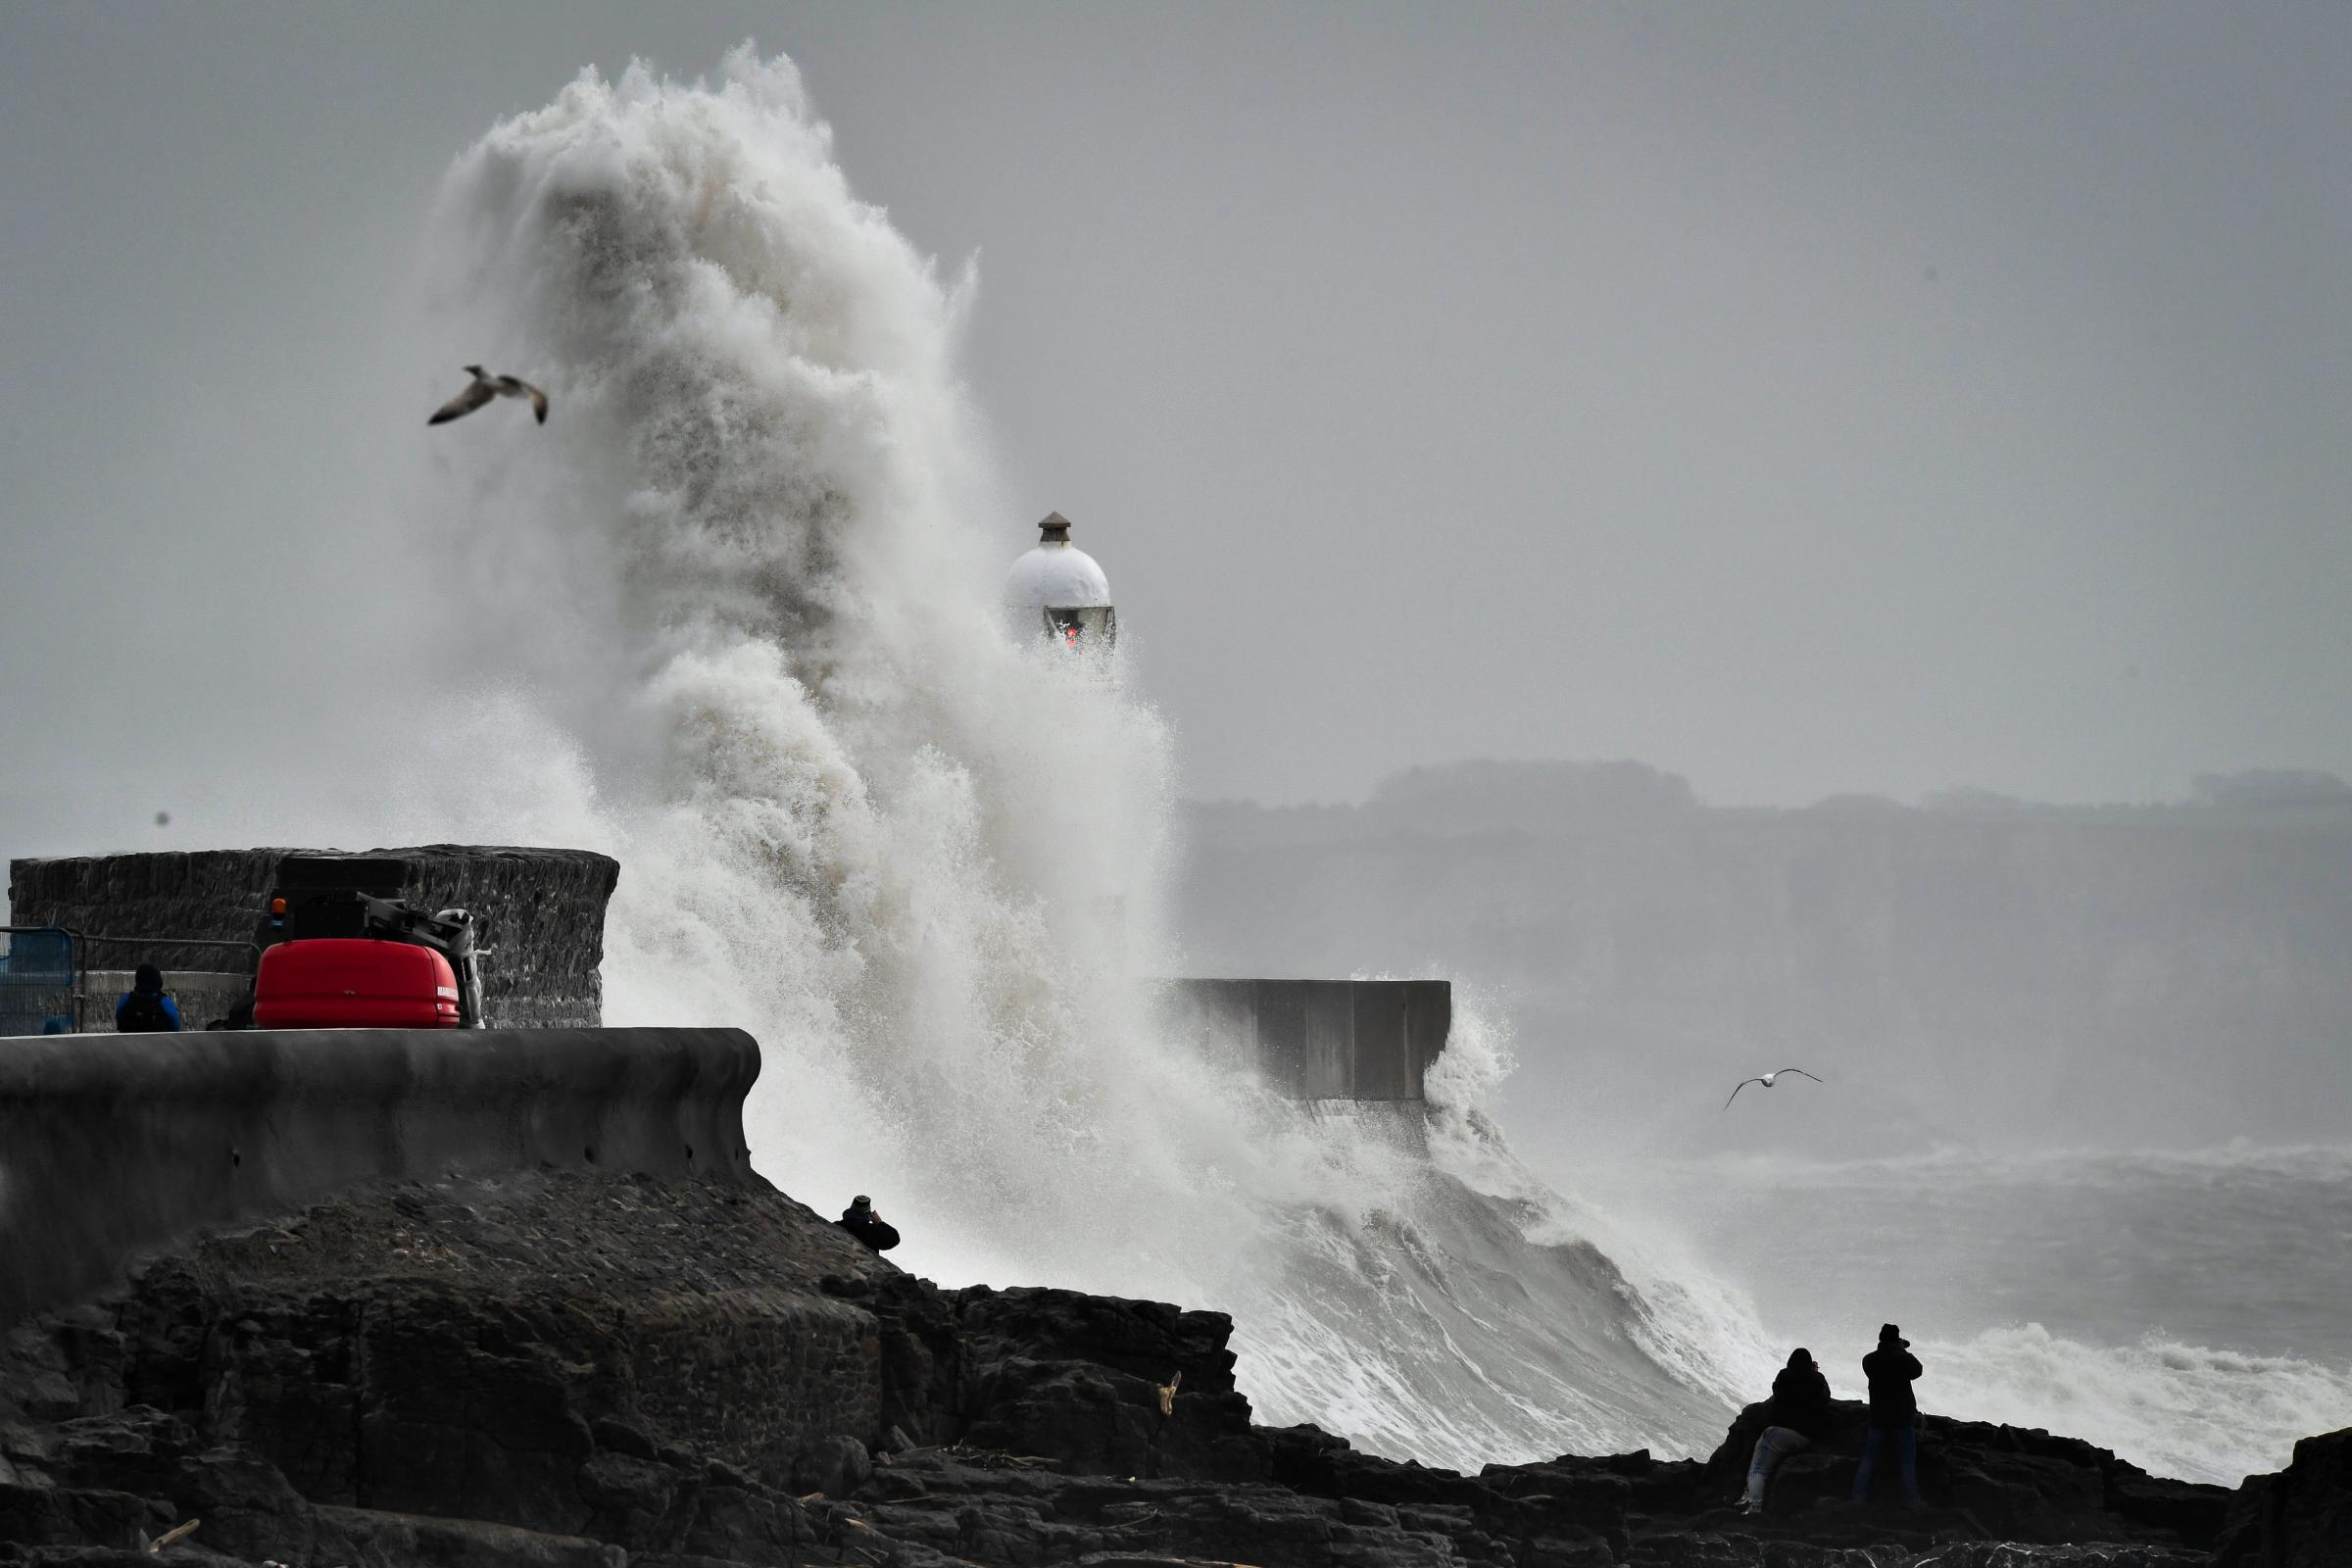 Huge waves hitting the harbour wall in Porthcawl, Wales, as Storm Gareth hit earlier in the year